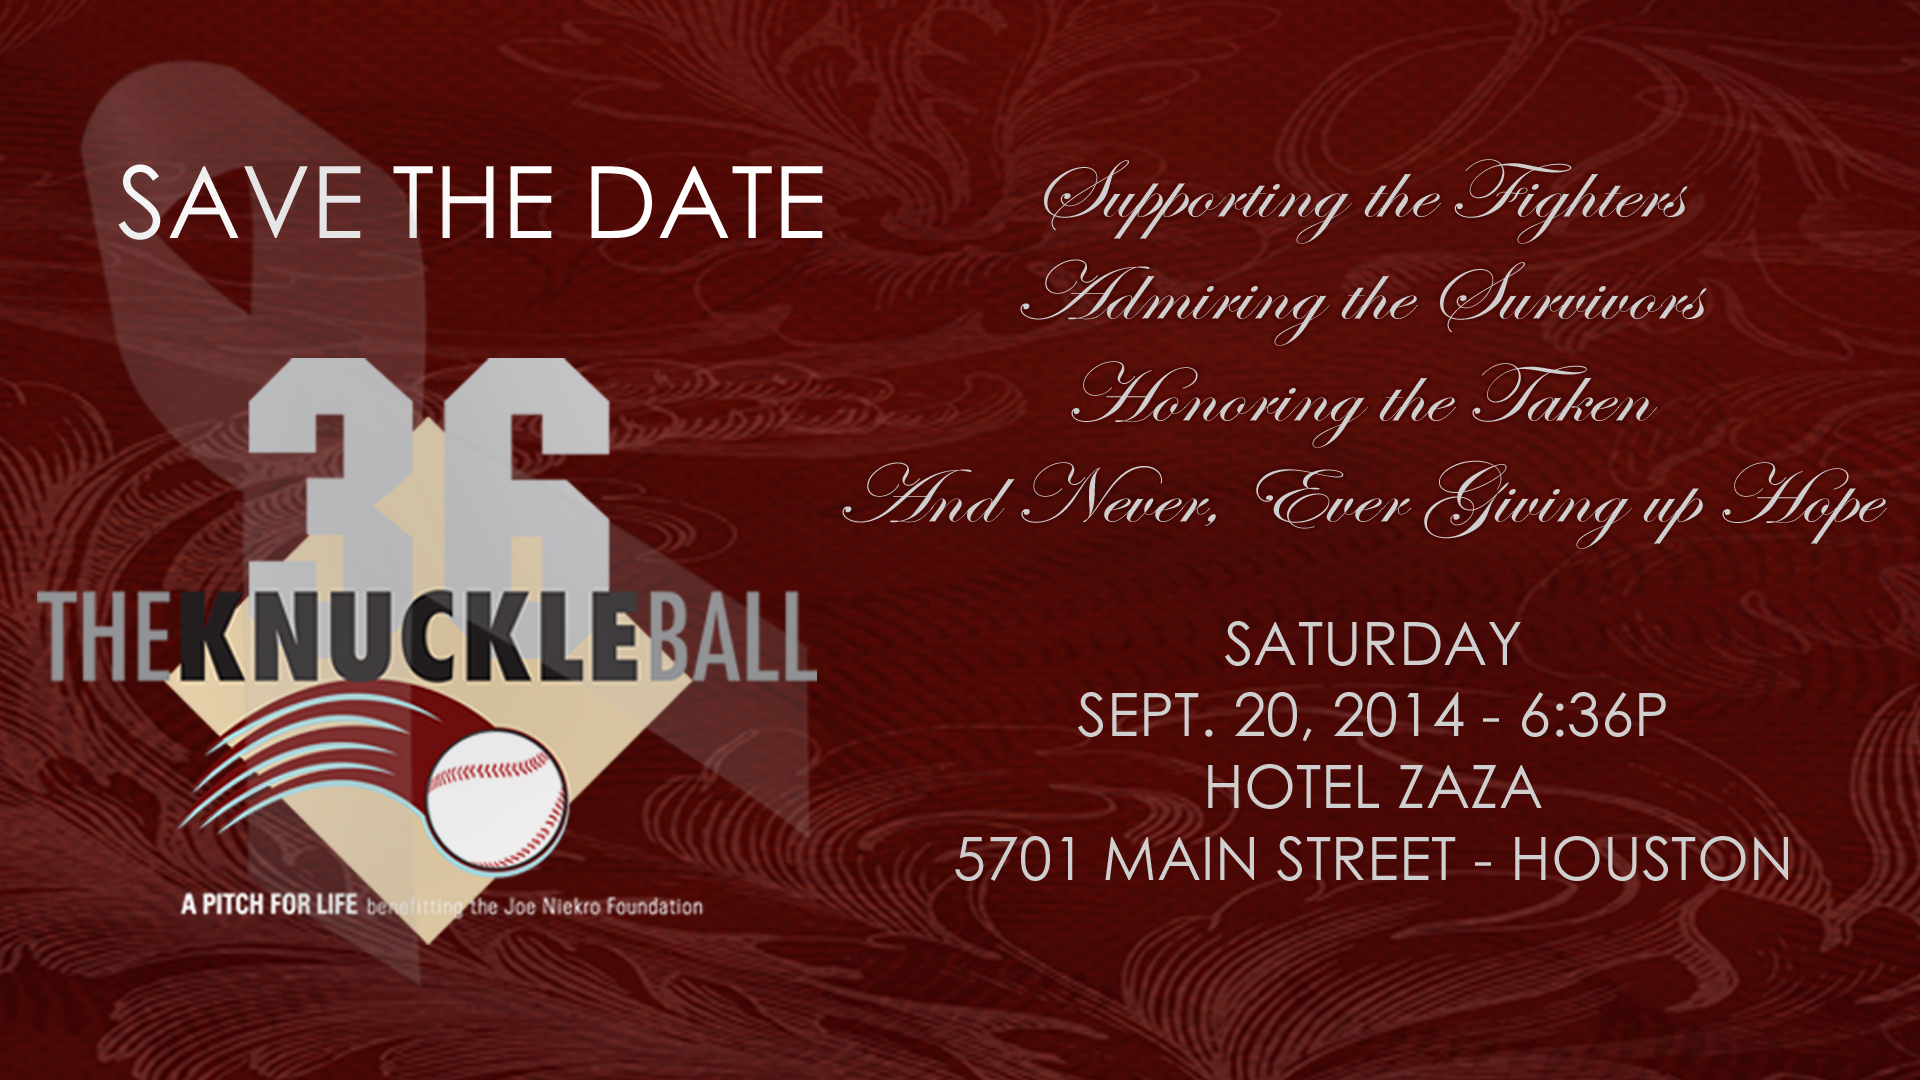 https://www.joeniekrofoundation.com/events/past-events/pastevents2015/phoenixknuckleball2015/attachment/web-banner-3/